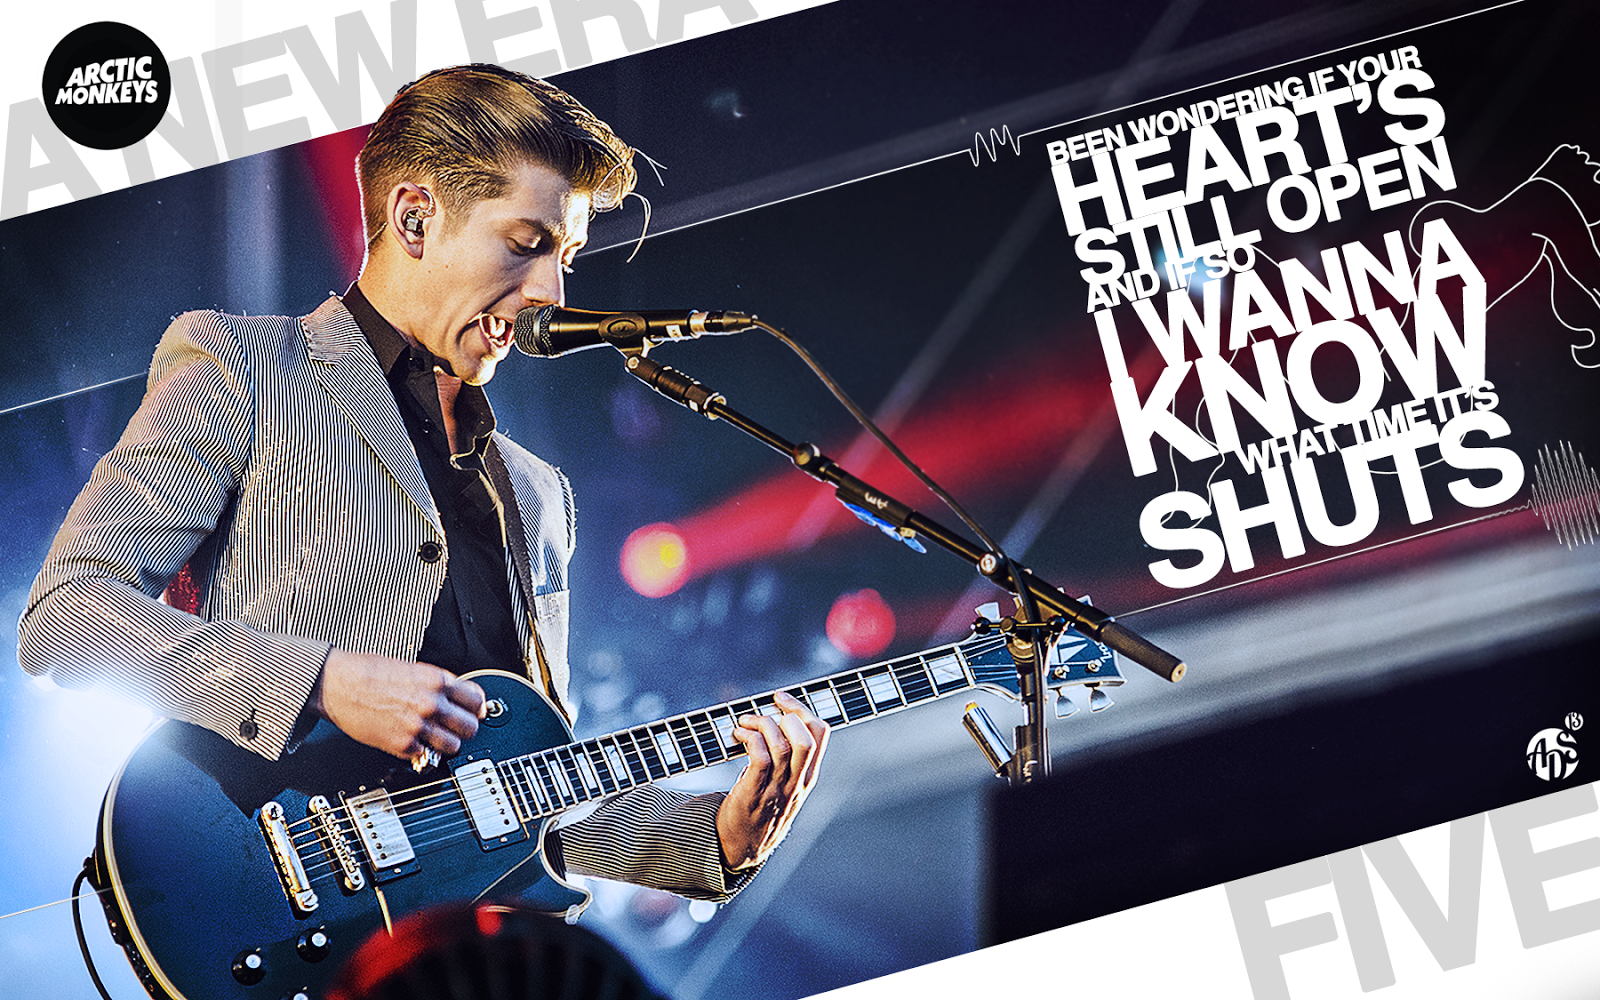 Alex Turner HD Wallpapers - HD Wallpapers Blog